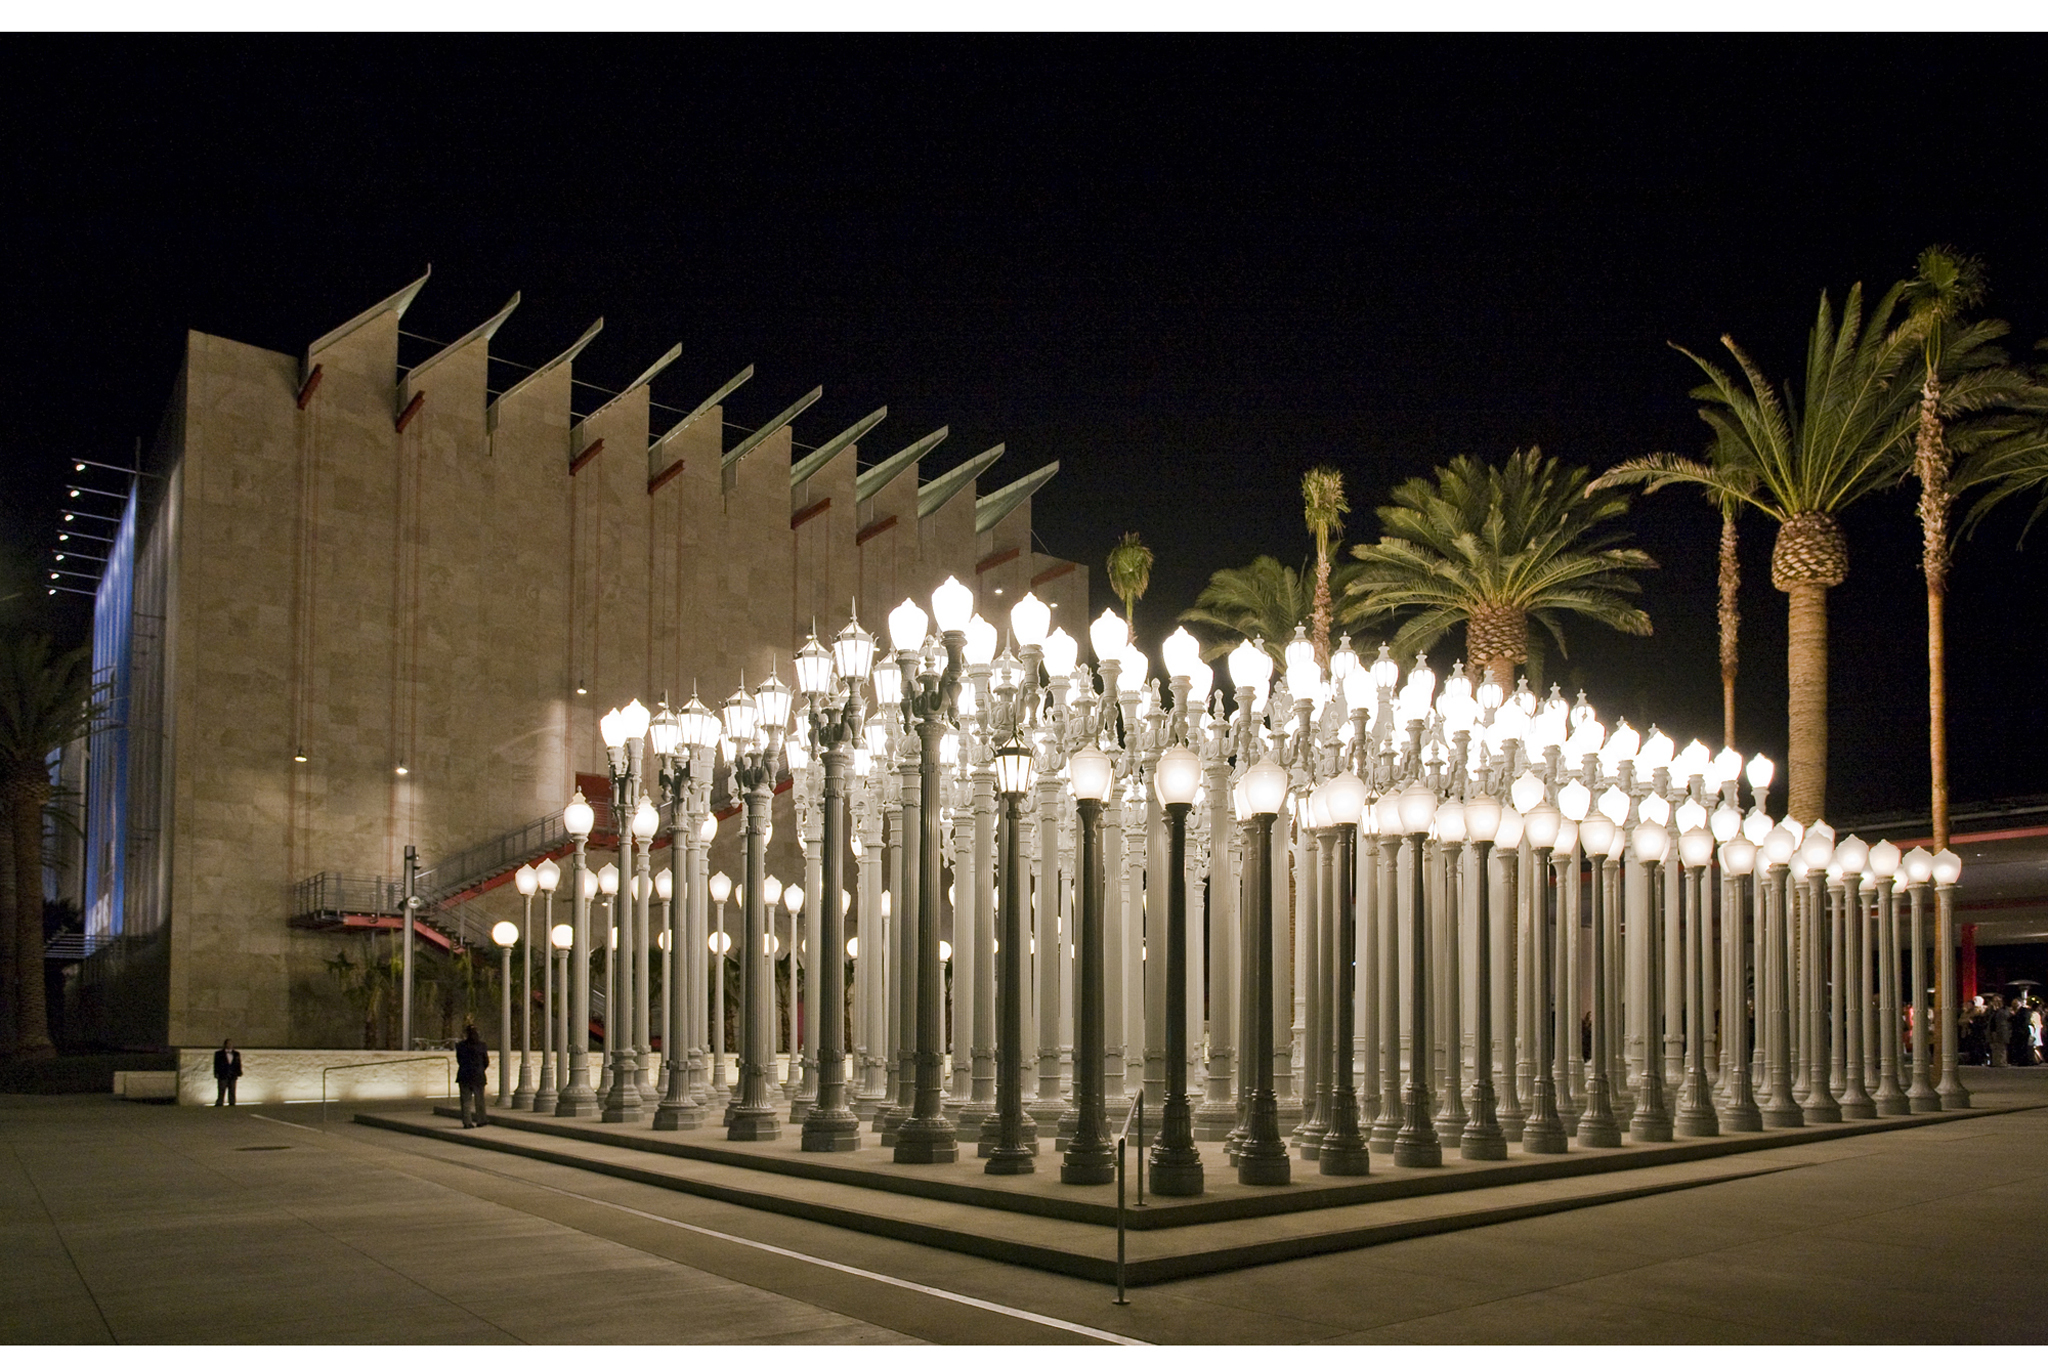 Marvel at Los Angeles' Museum Row